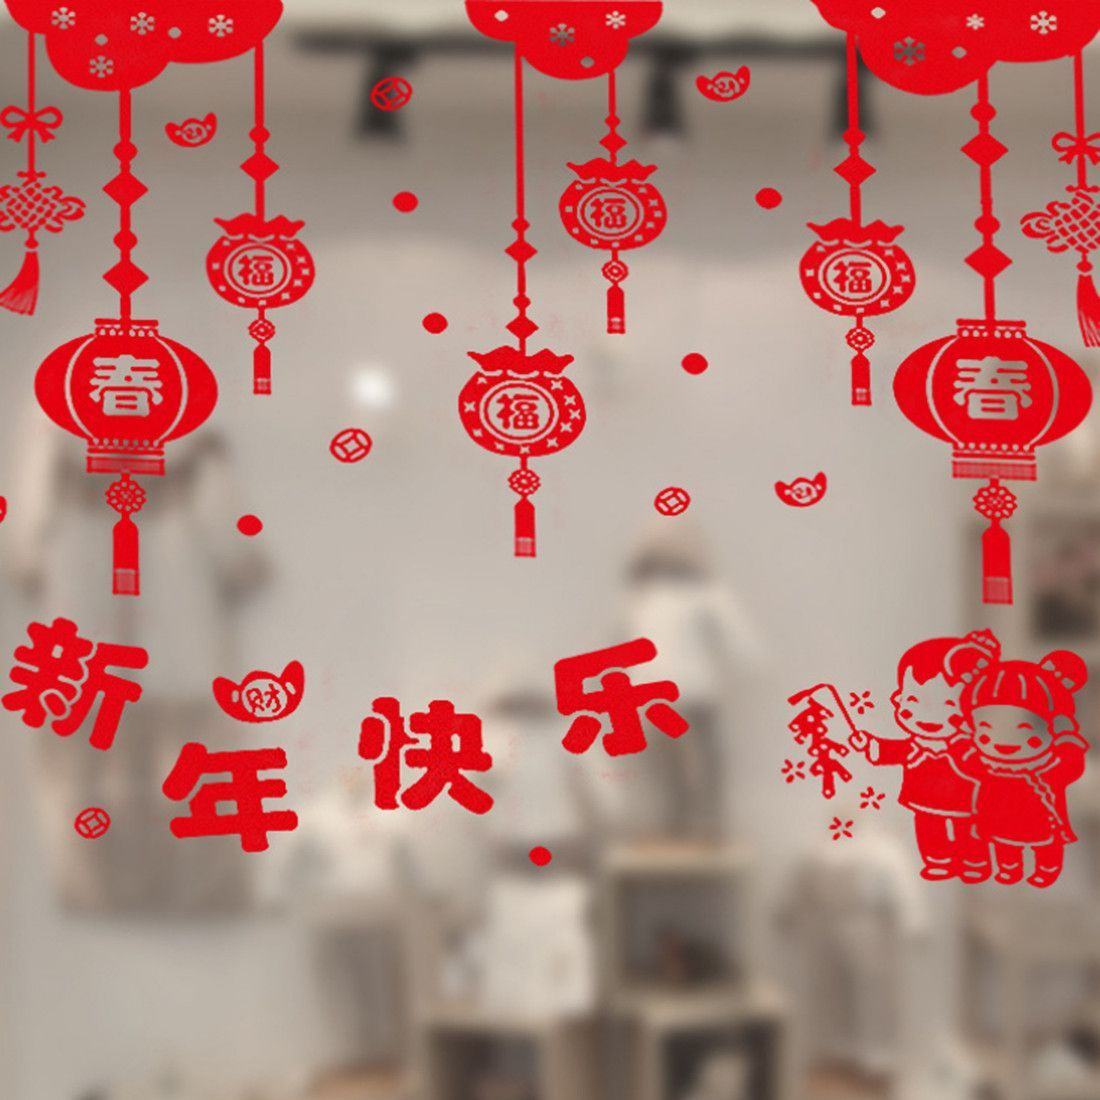 2017 New Year Chinese Spring Festival Electrostatic Glass Window Door Home Decoration Wall Sticker